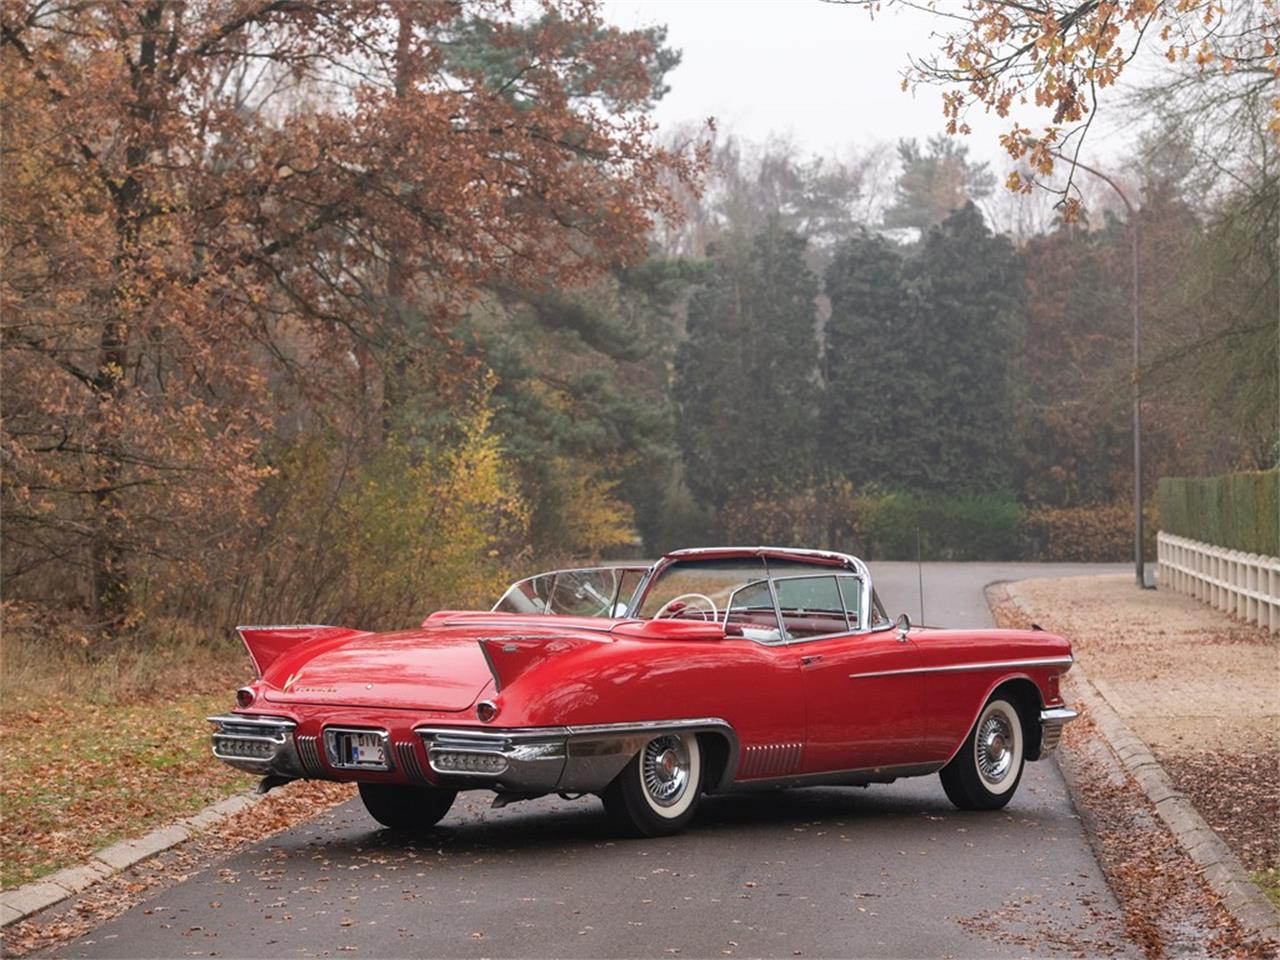 1958 Cadillac Eldorado Biarritz for sale in Essen, Other – photo 2